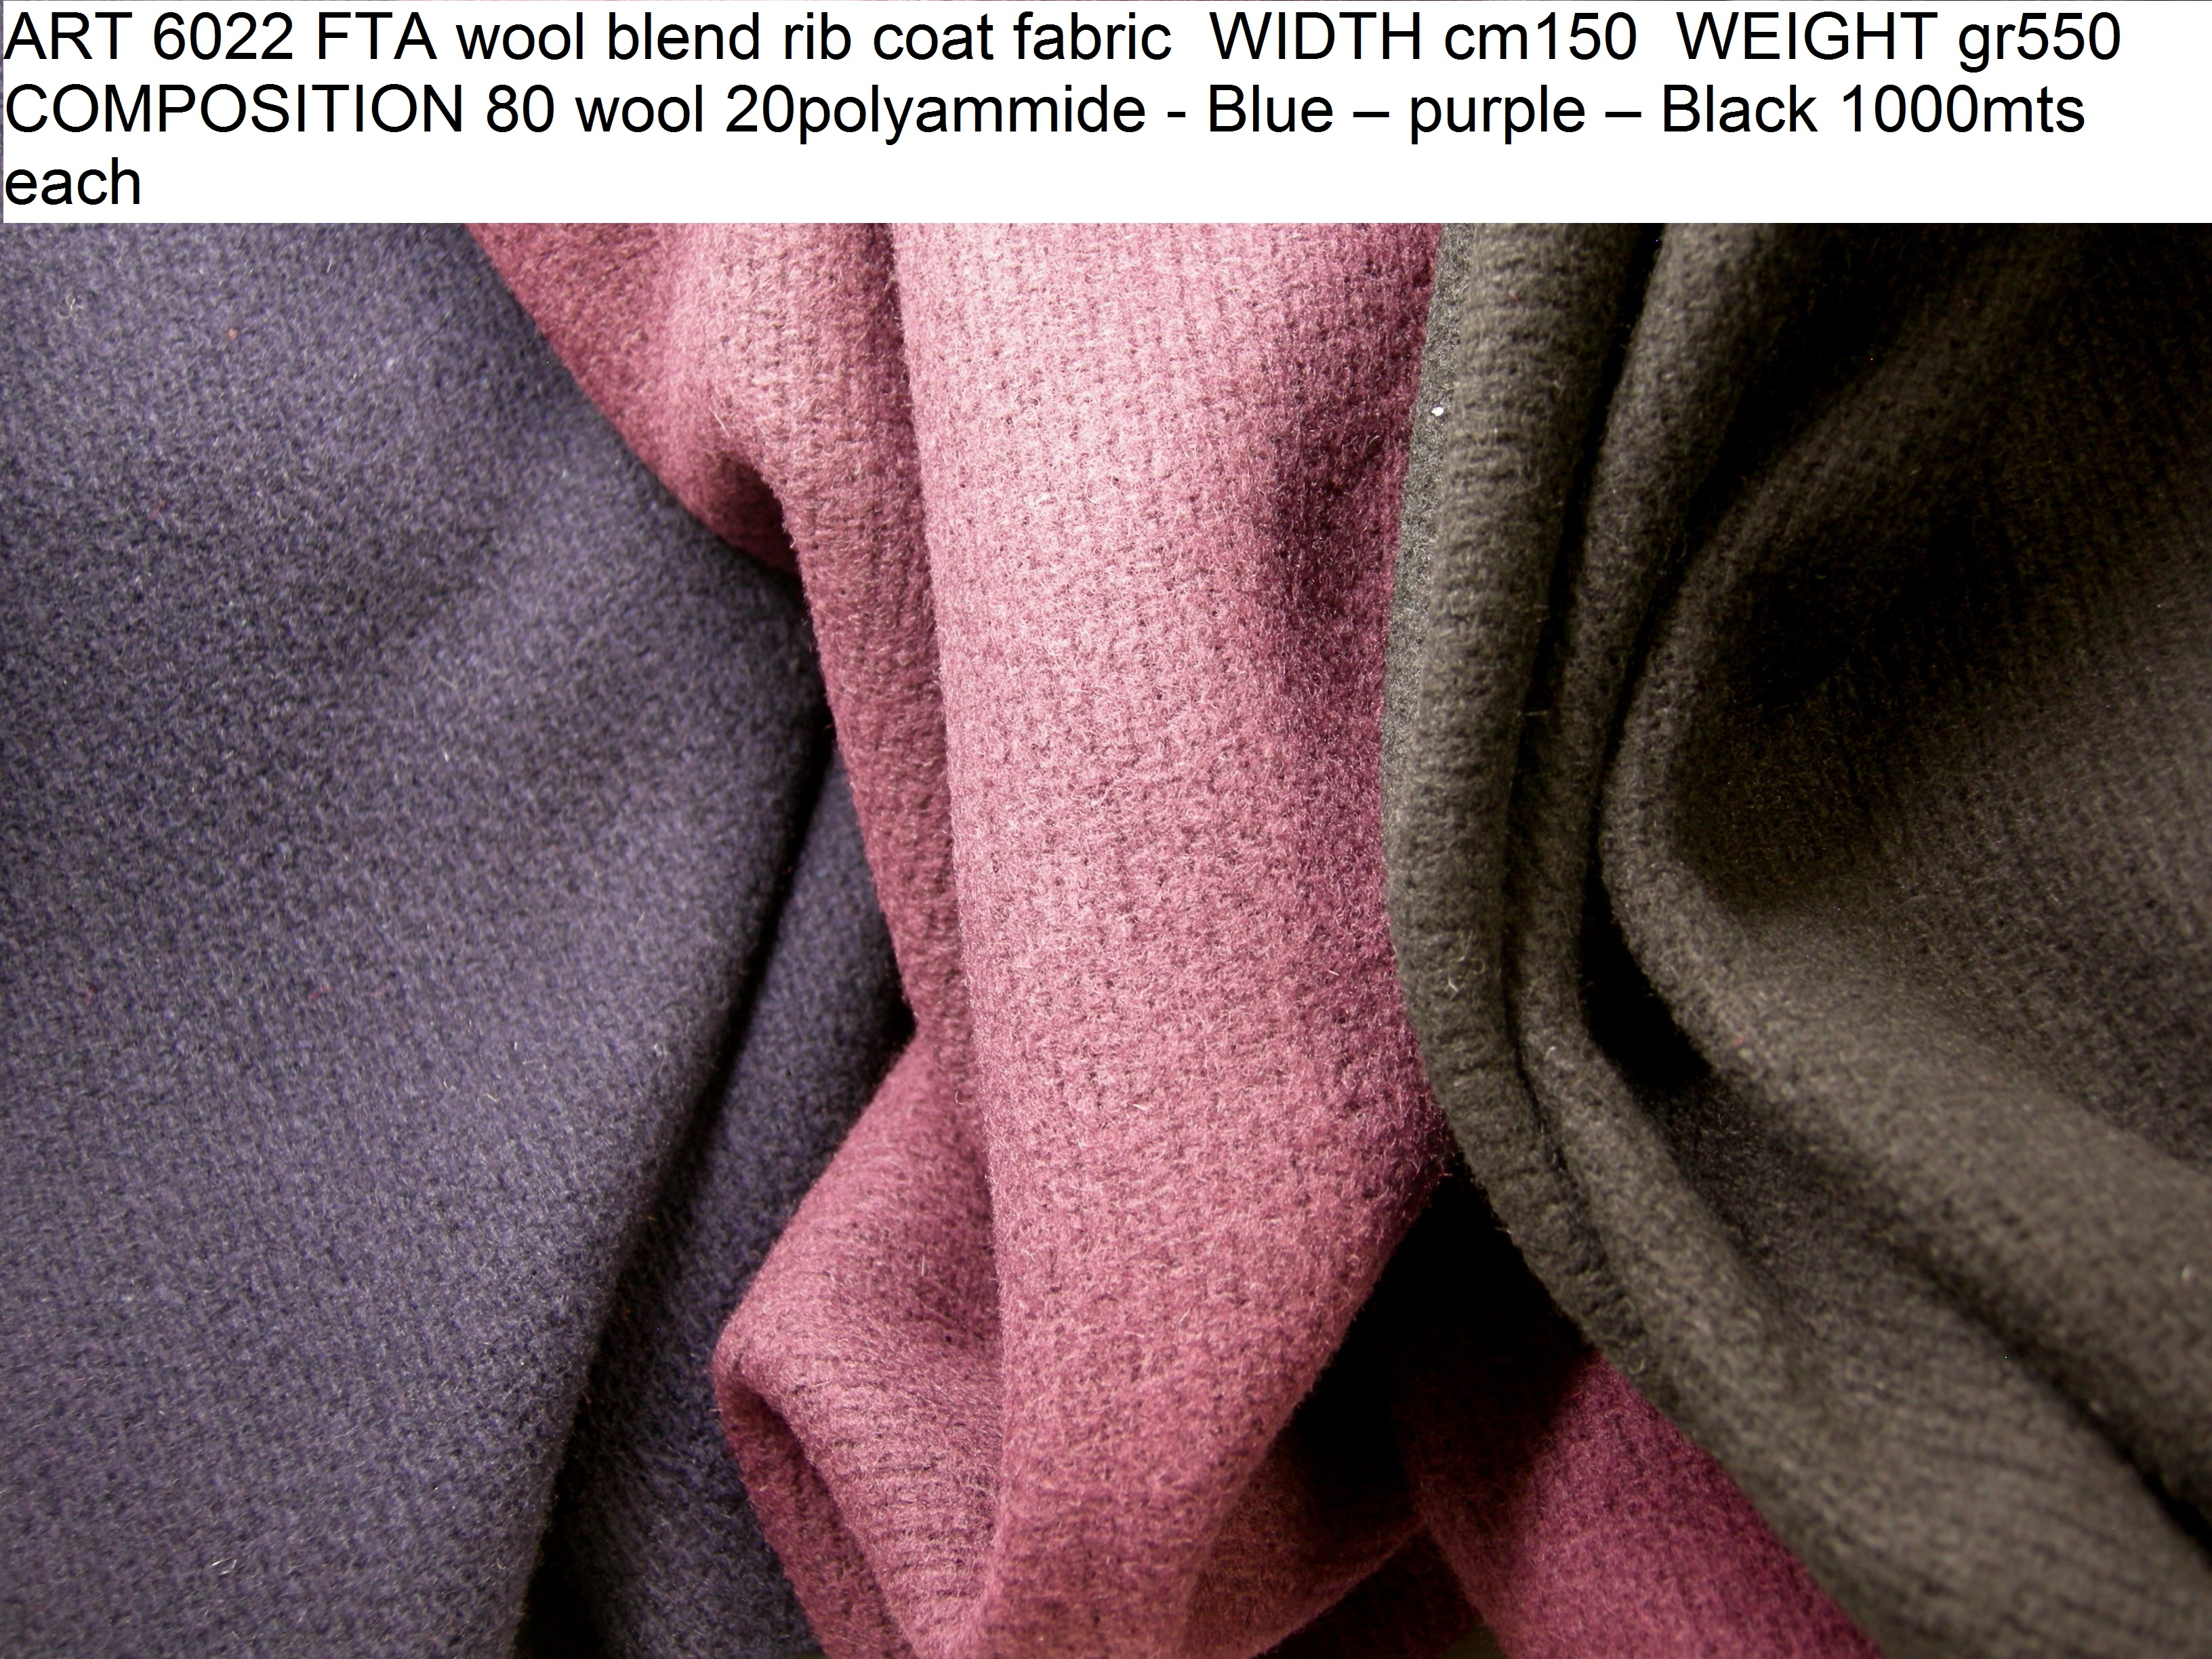 ART 6022 FTA wool blend rib coat fabric WIDTH cm150 WEIGHT gr550 COMPOSITION 80 wool 20polyammide - Blue – purple – Black 1000mts each